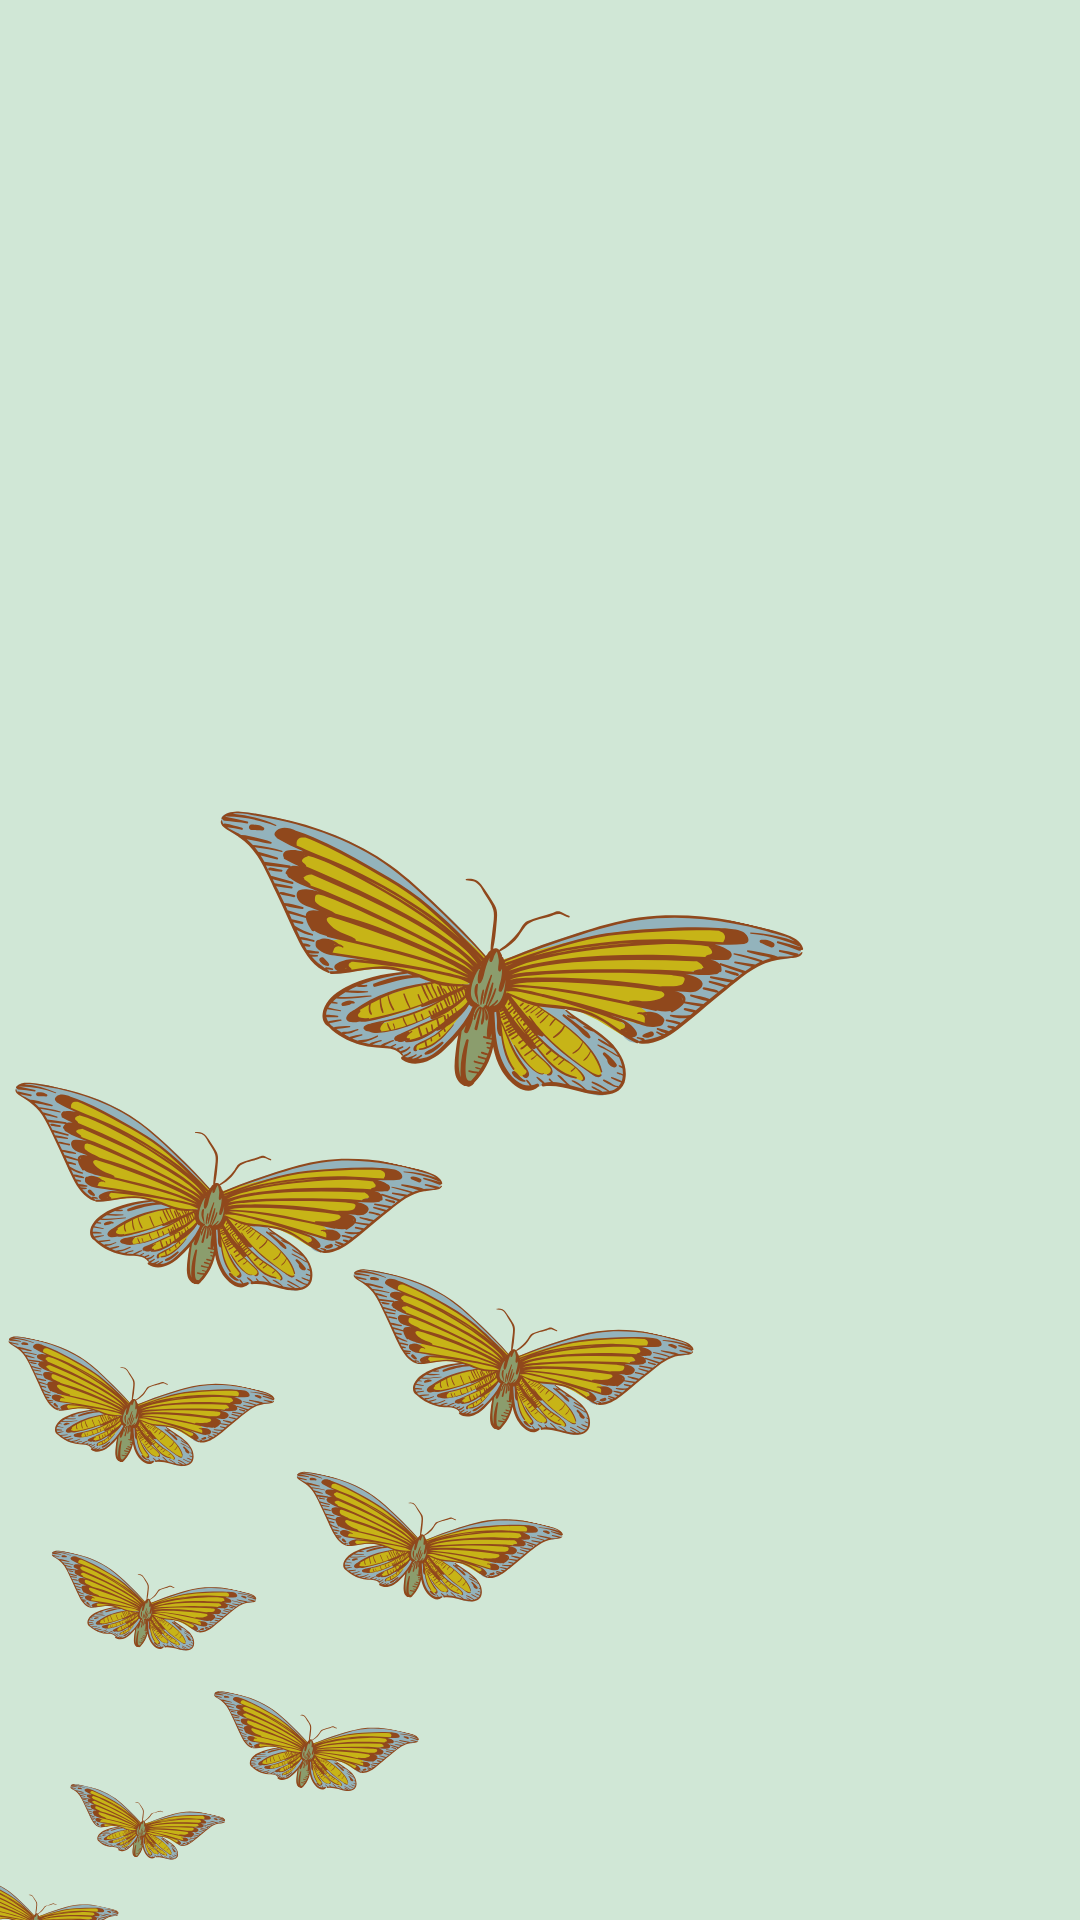 Aesthetic Butterfly Fly Away Free Mobile Wallpaper Background Lock Screen For Iphone And Android Iphone Wallpaper Girly Plant Wallpaper Green Aesthetic